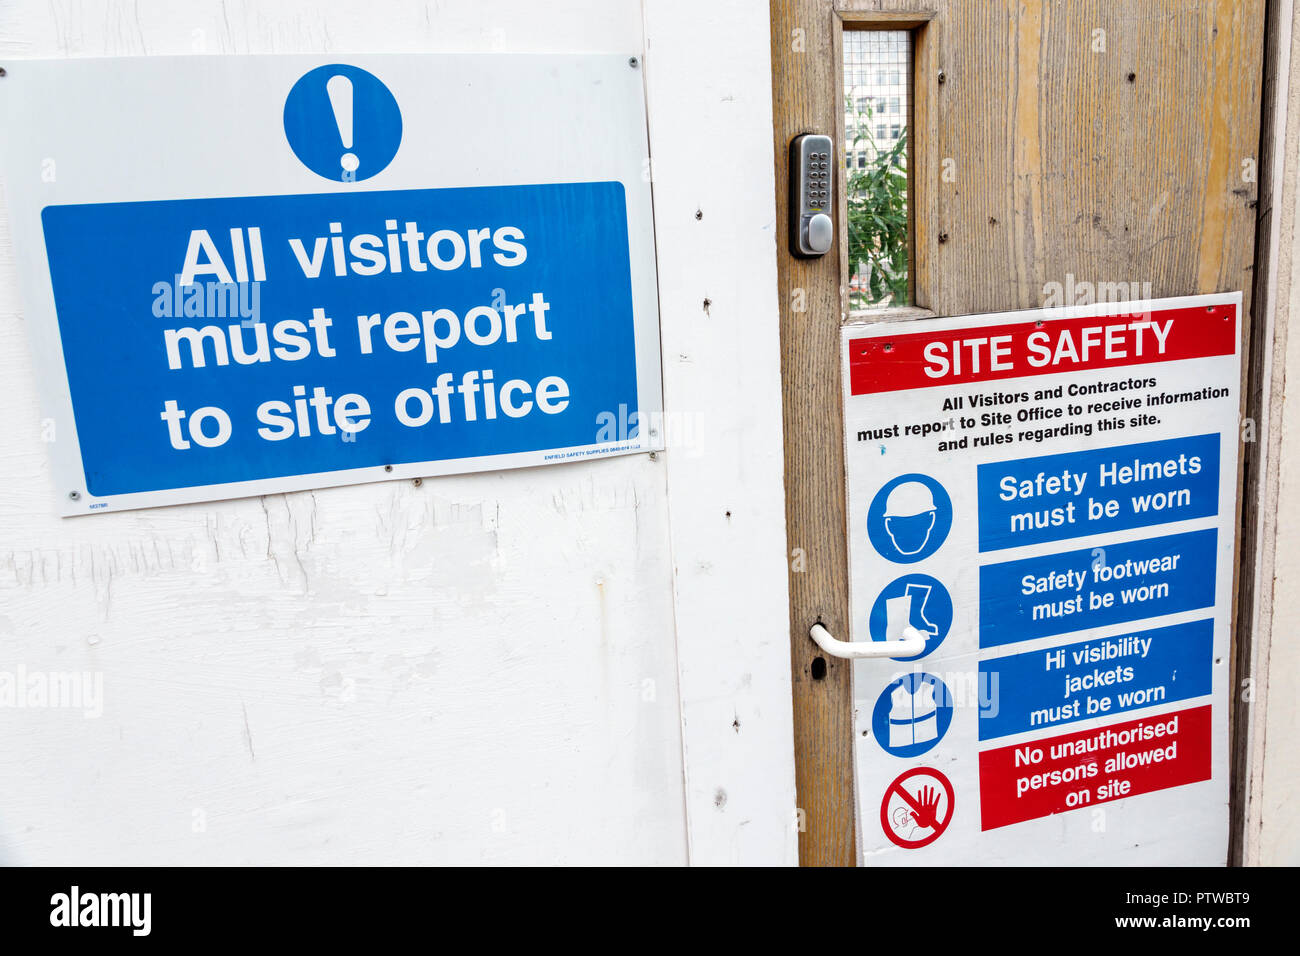 London England United Kingdom Great Britain Southwark under construction site office entrance safety rules guidelines hard hats helmets proper footwea - Stock Image